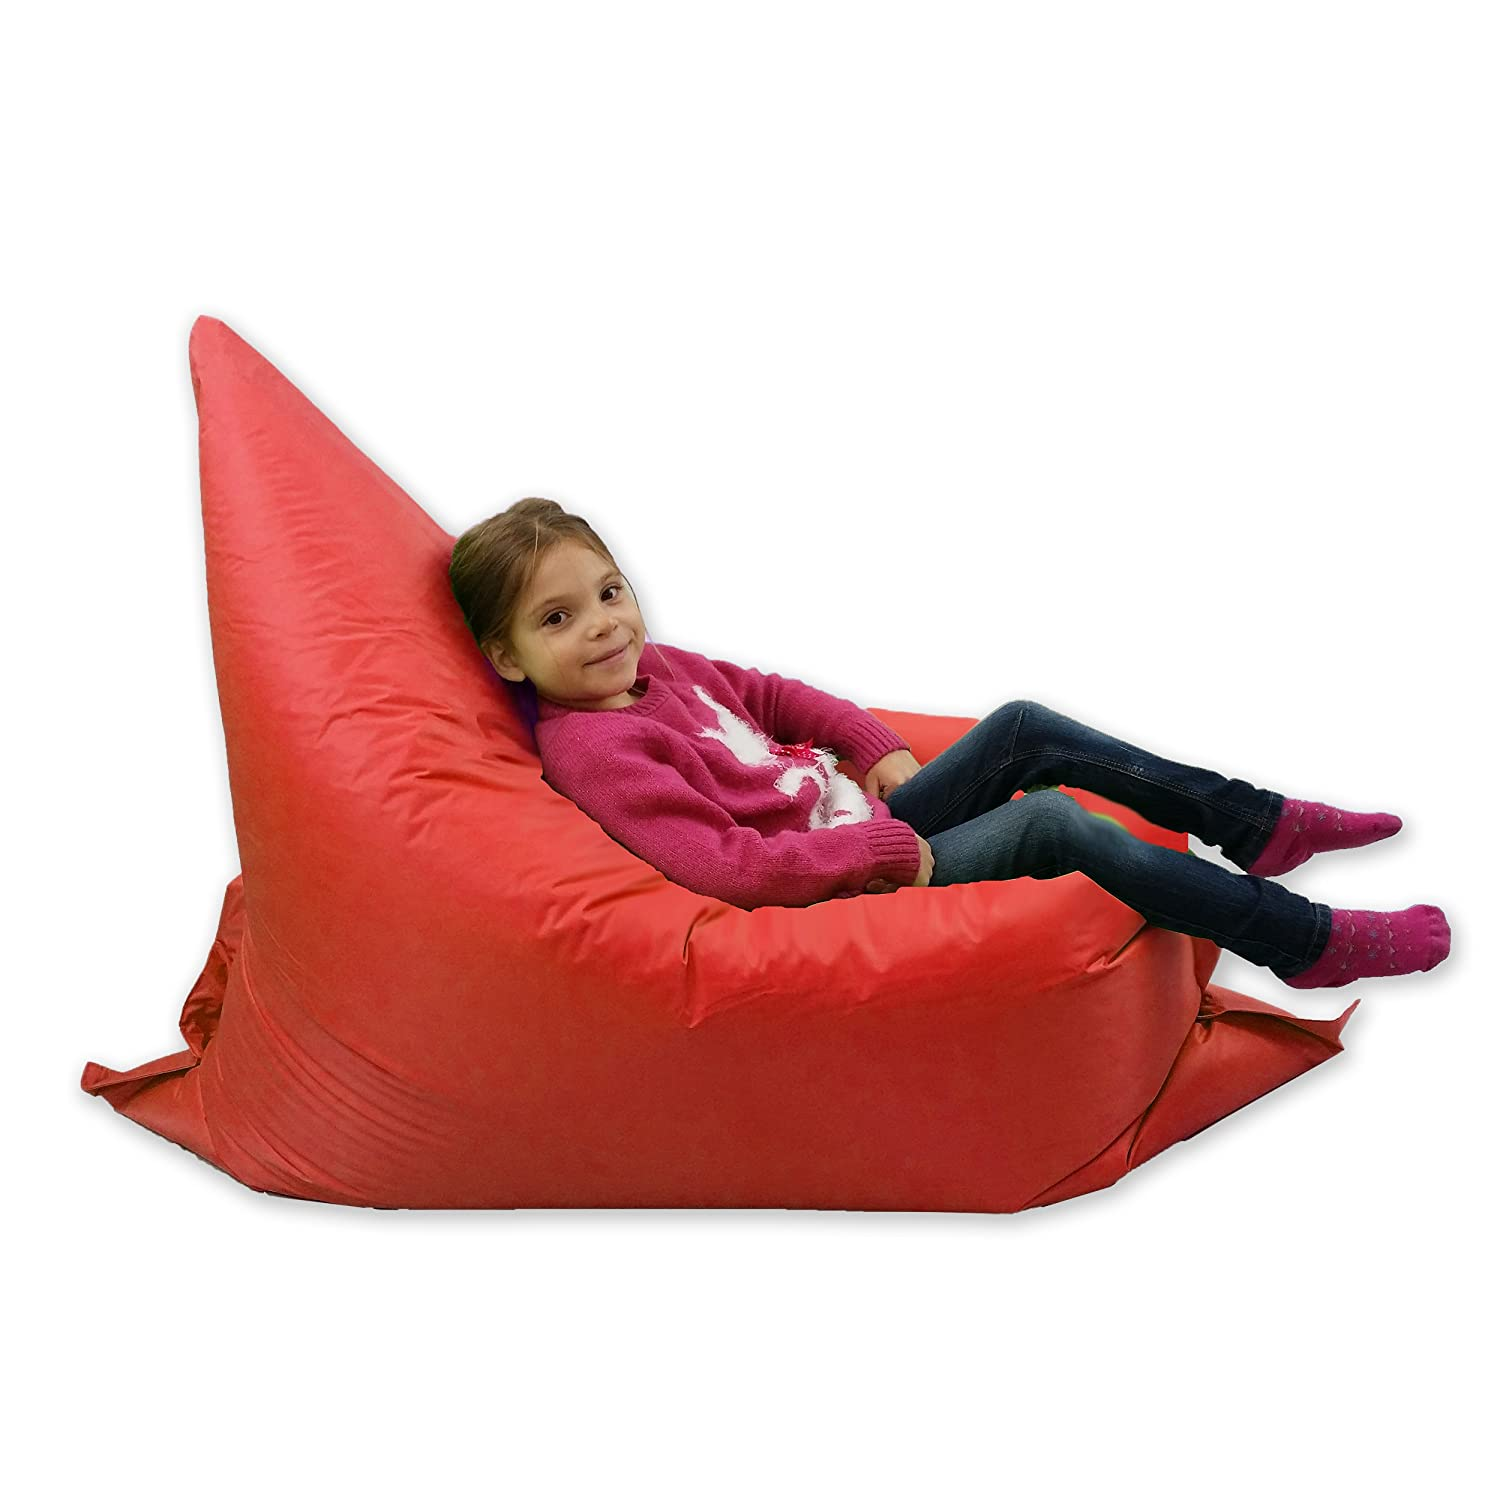 Kids BeanBag Large 6 Way Garden Lounger